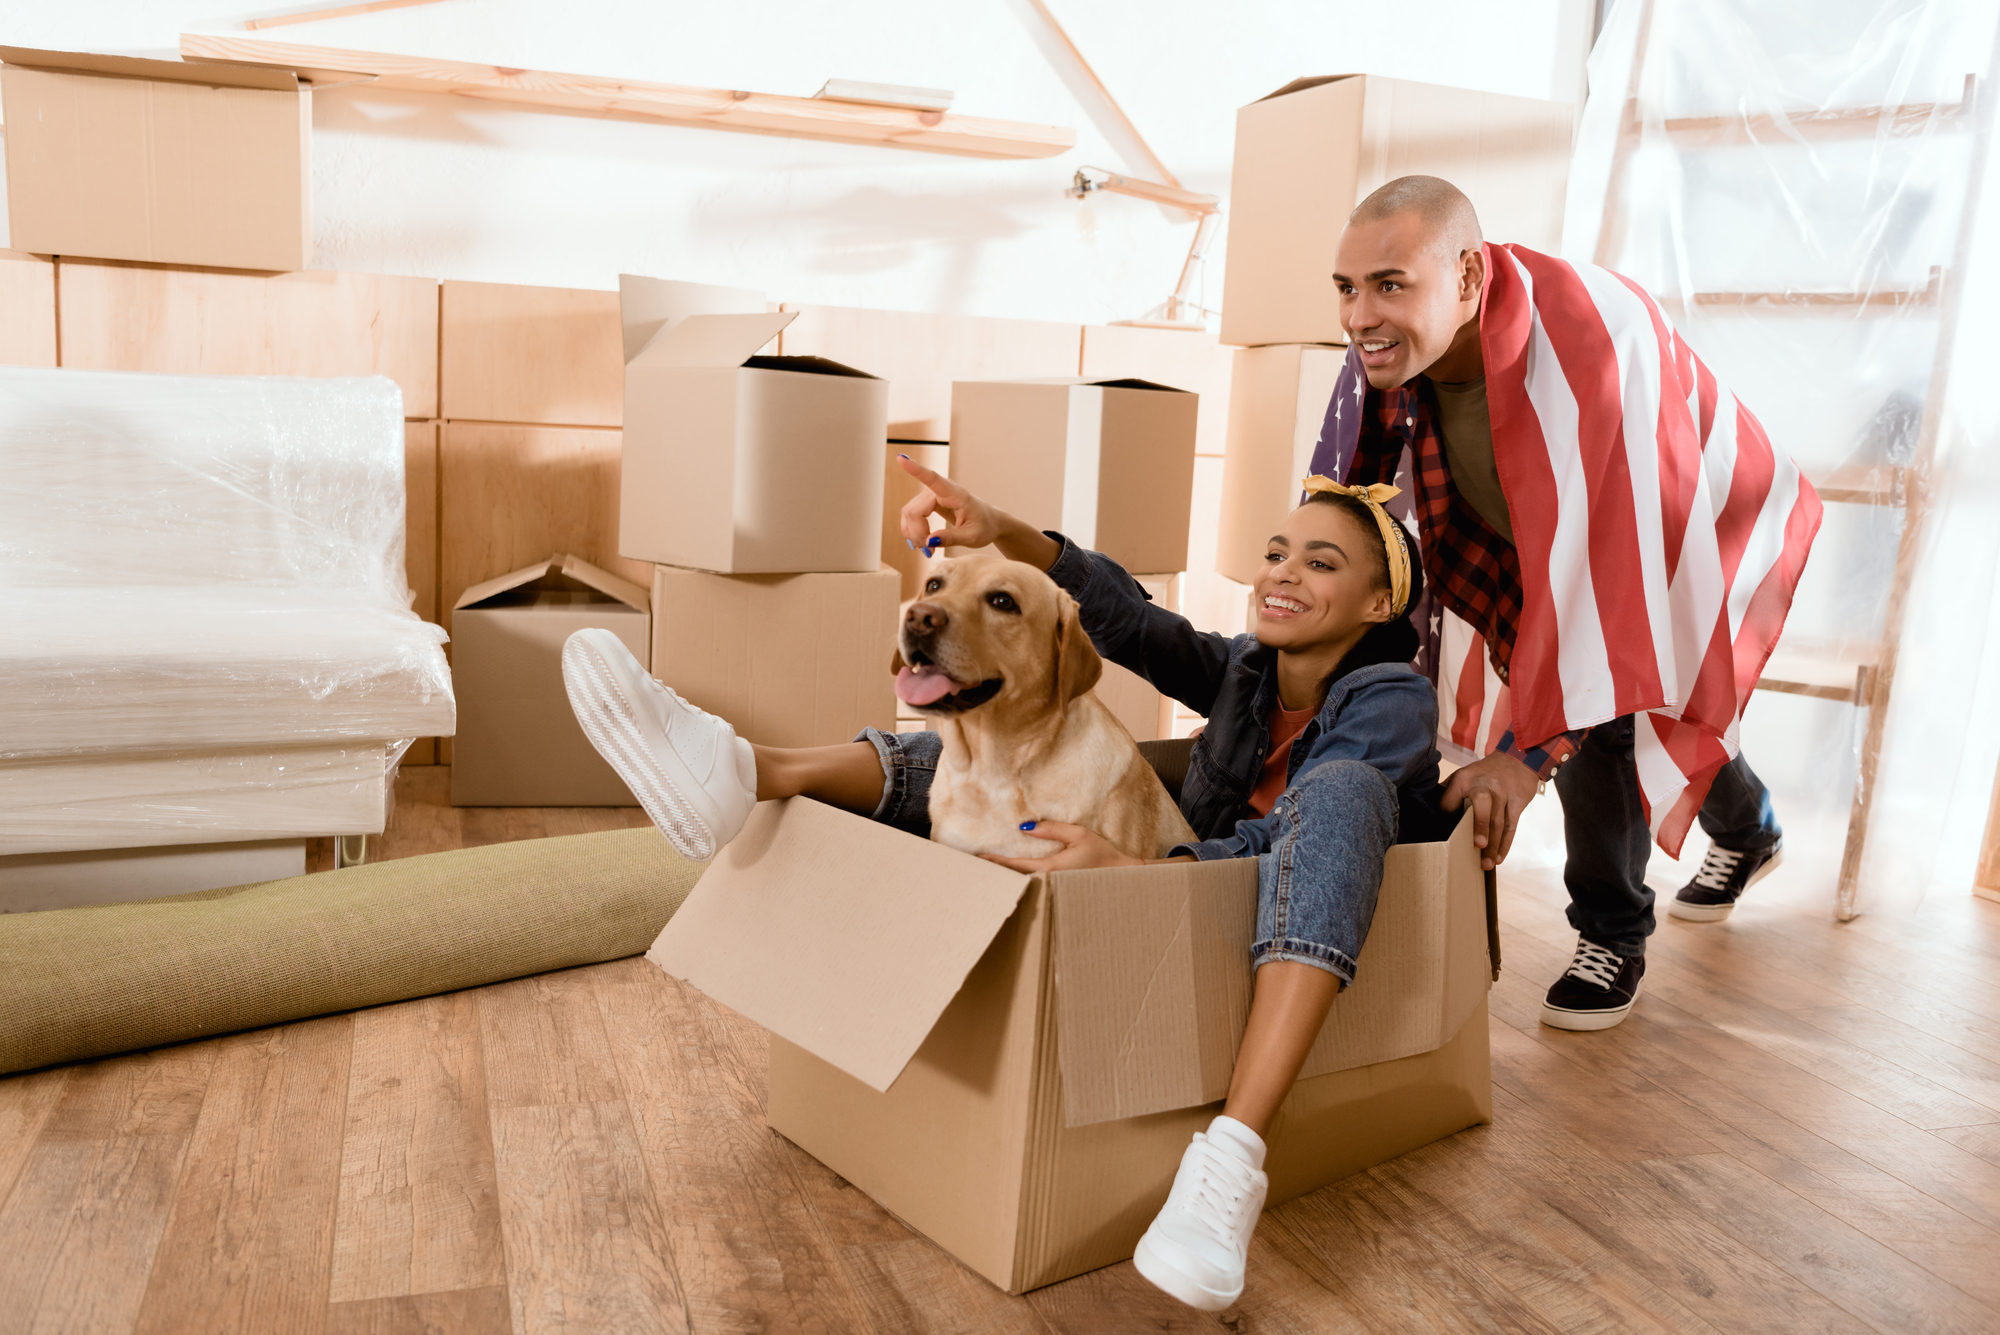 African american couple having fun with dog in new apartment